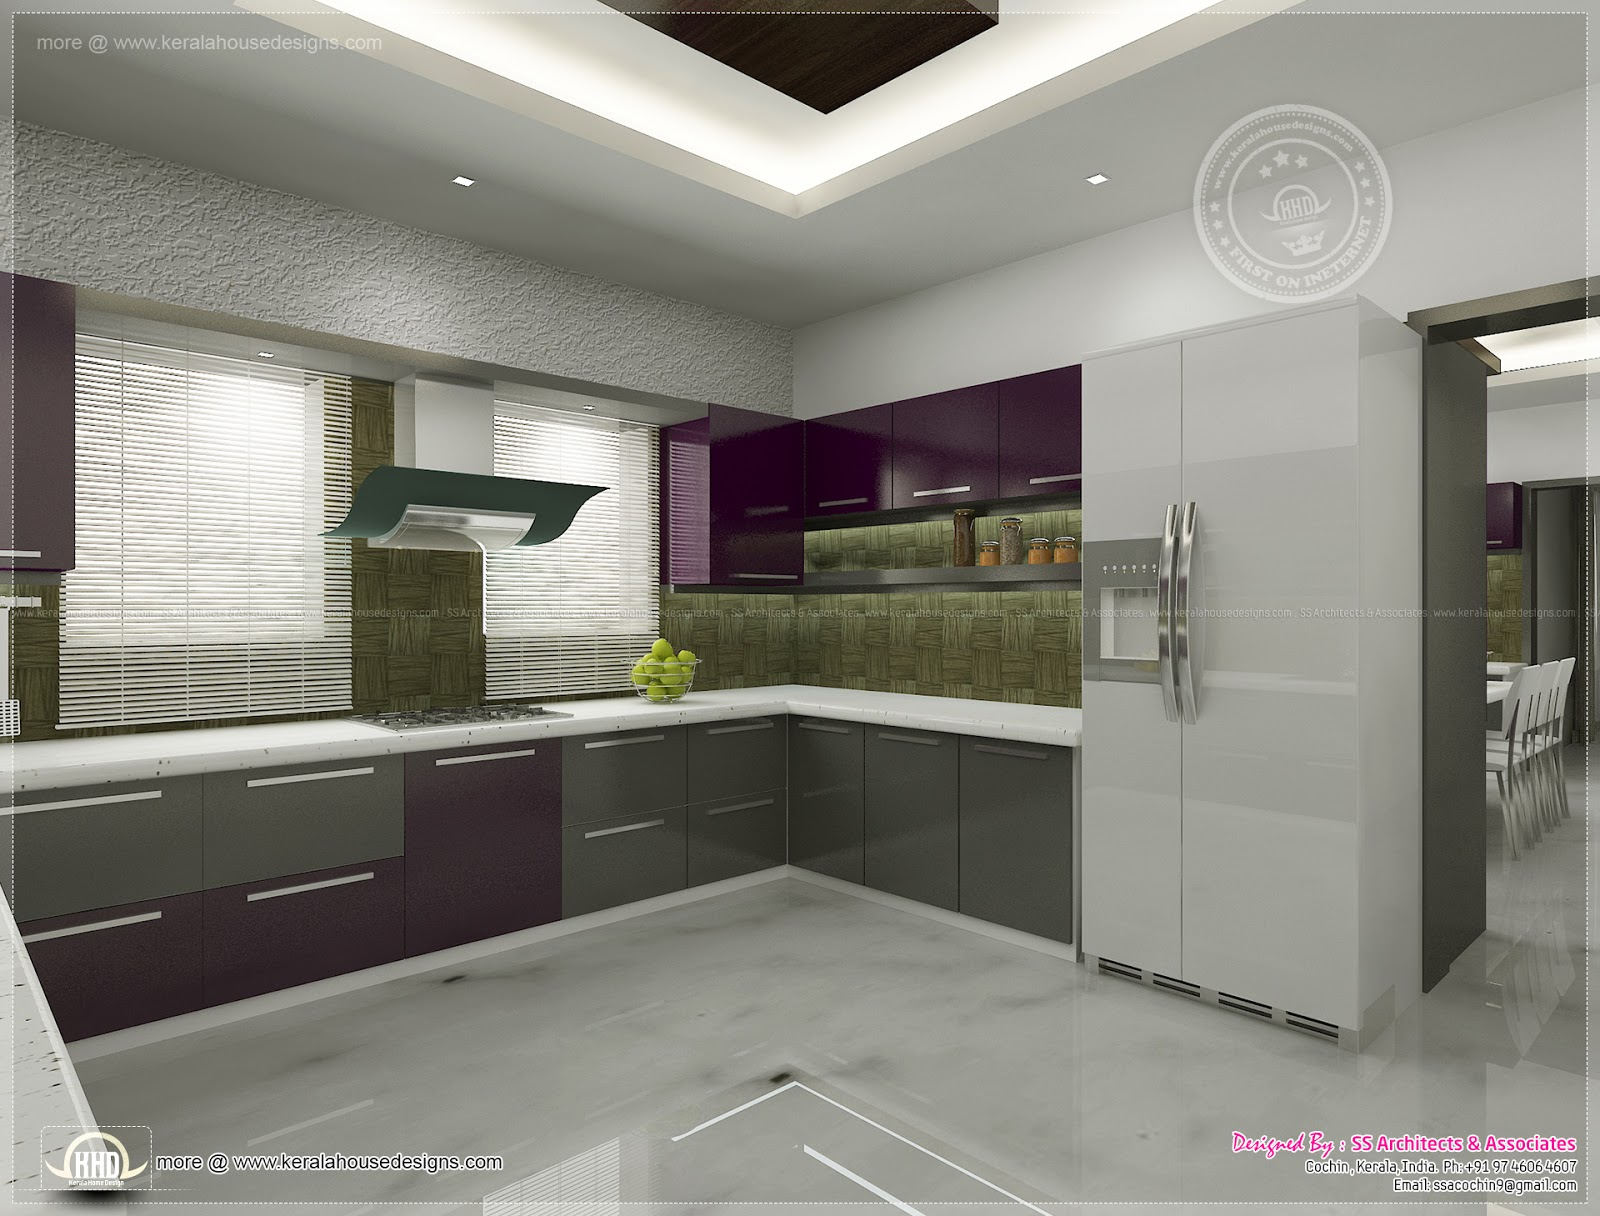 Kitchen interior views by ss architects cochin kerala for Interior design for kitchen in kerala